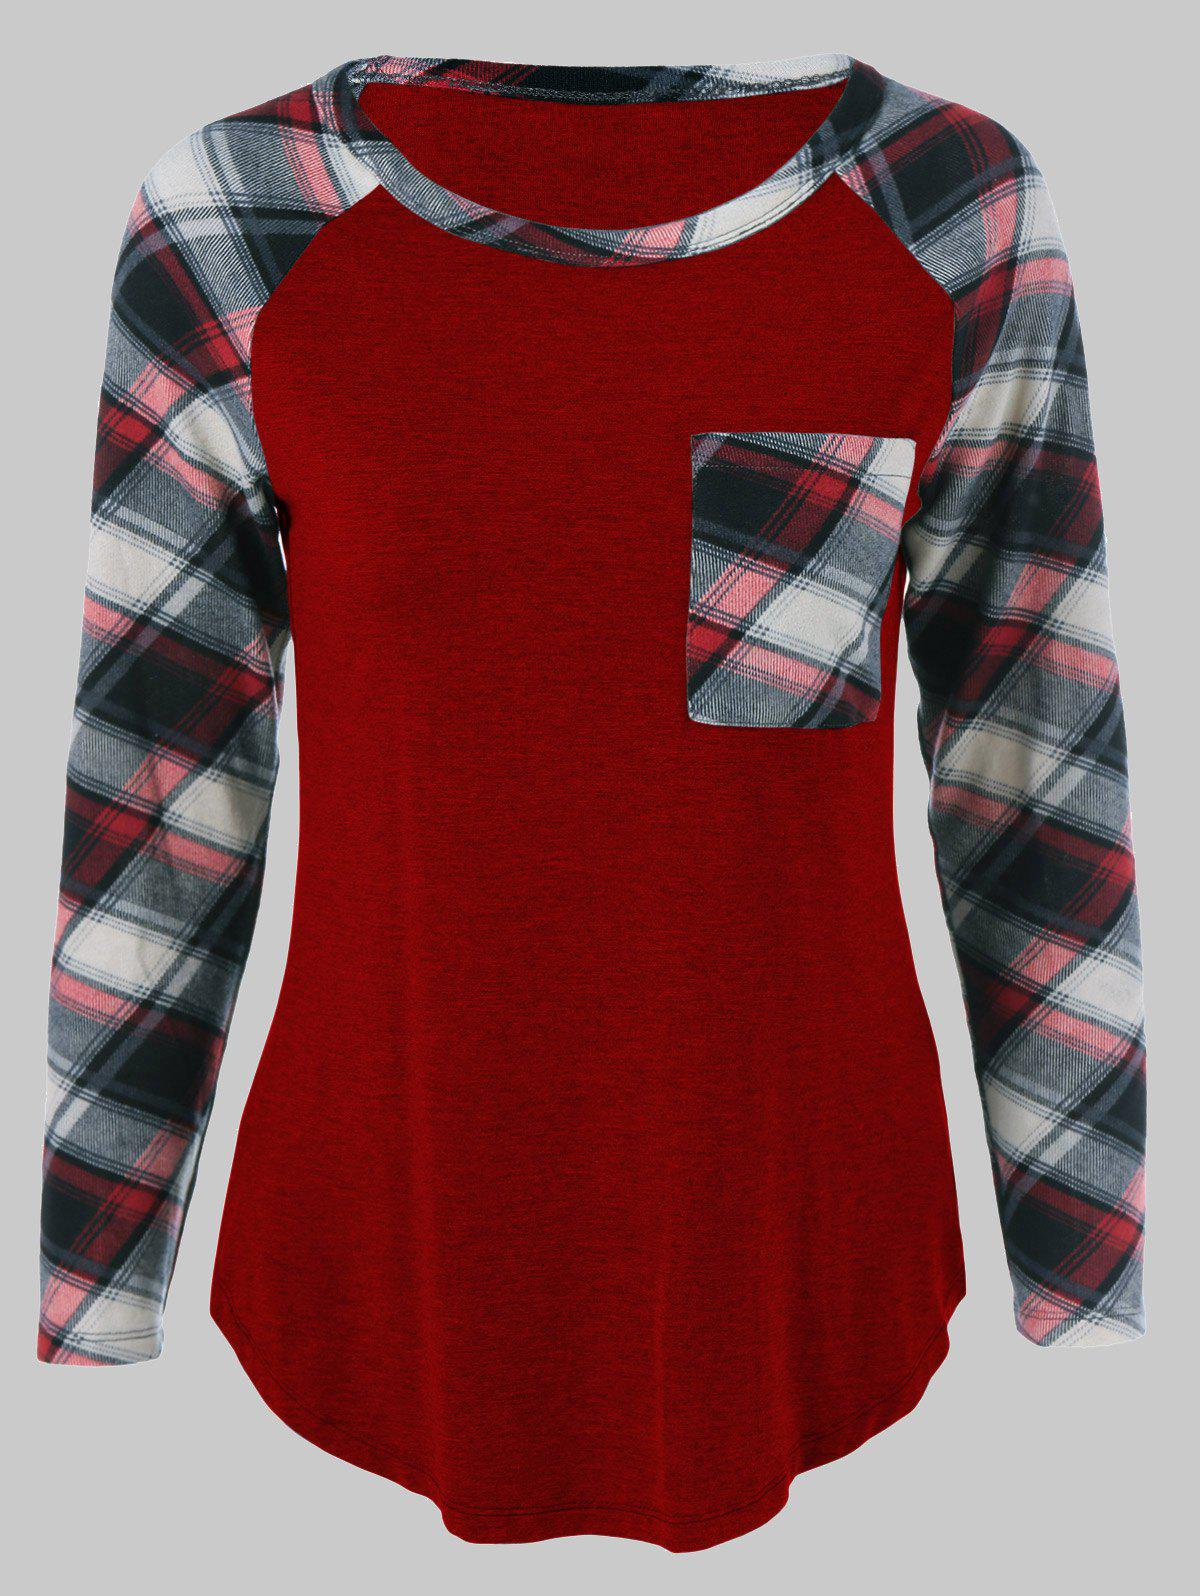 Plus Size One Pocket Plaid Long Sleeve T-ShirtWOMEN<br><br>Size: XL; Color: DEEP RED; Material: Cotton Blends,Spandex; Shirt Length: Long; Sleeve Length: Full; Collar: Scoop Neck; Style: Casual; Season: Fall,Spring,Summer; Pattern Type: Plaid; Weight: 0.2460kg; Package Contents: 1 x T-Shirt;